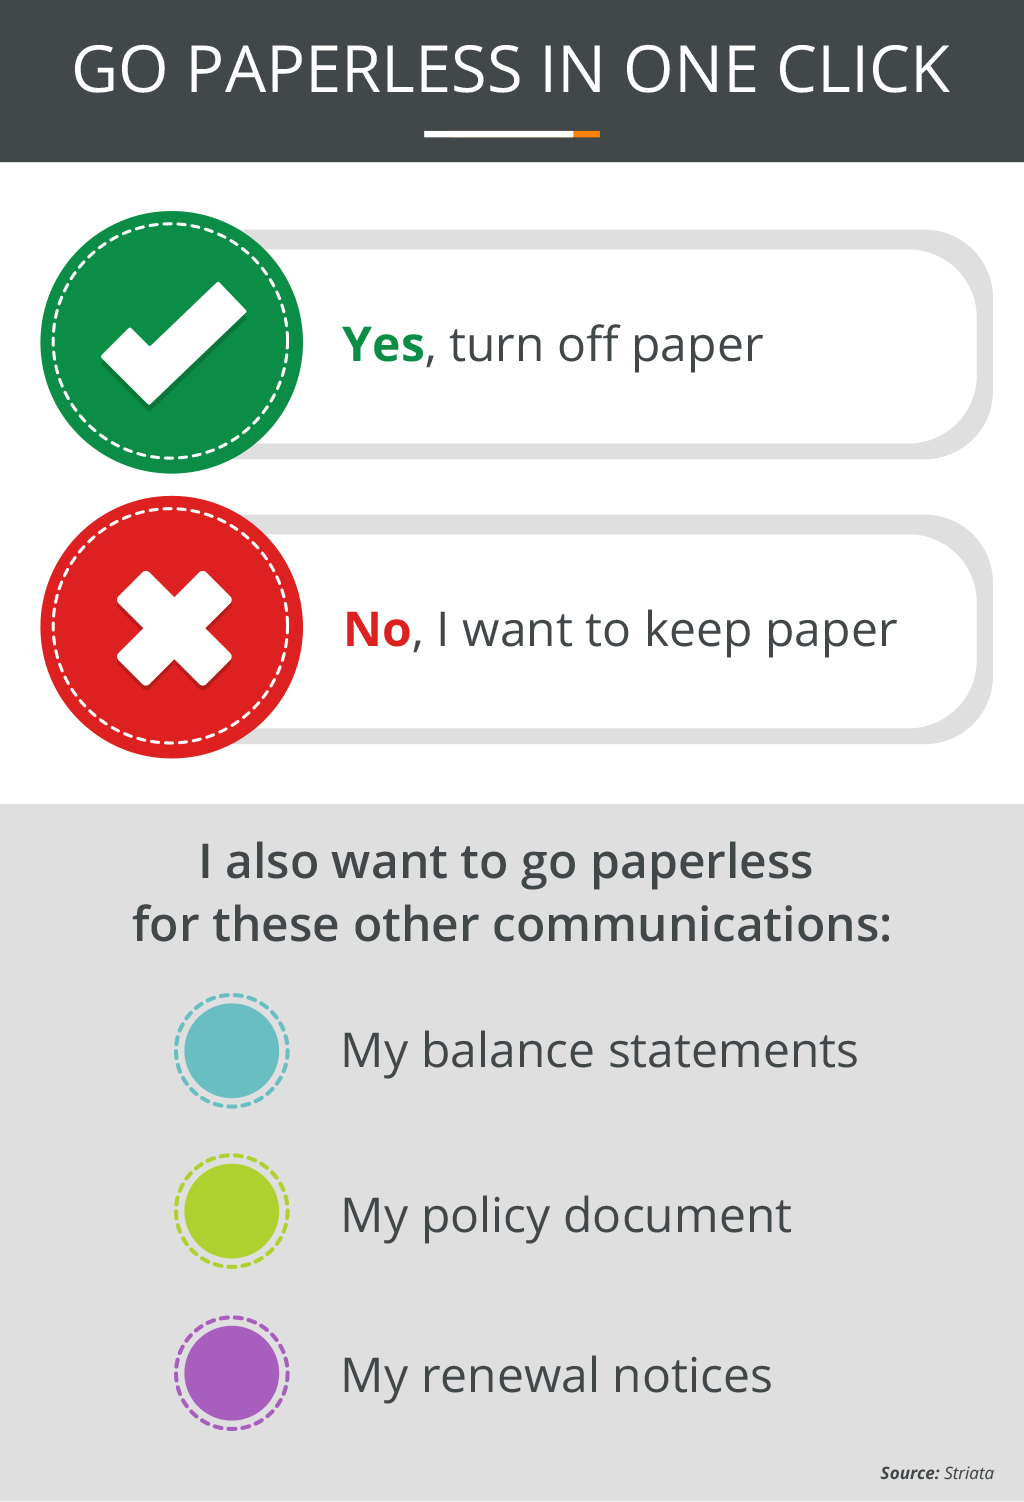 Go Paperless In One Click Image